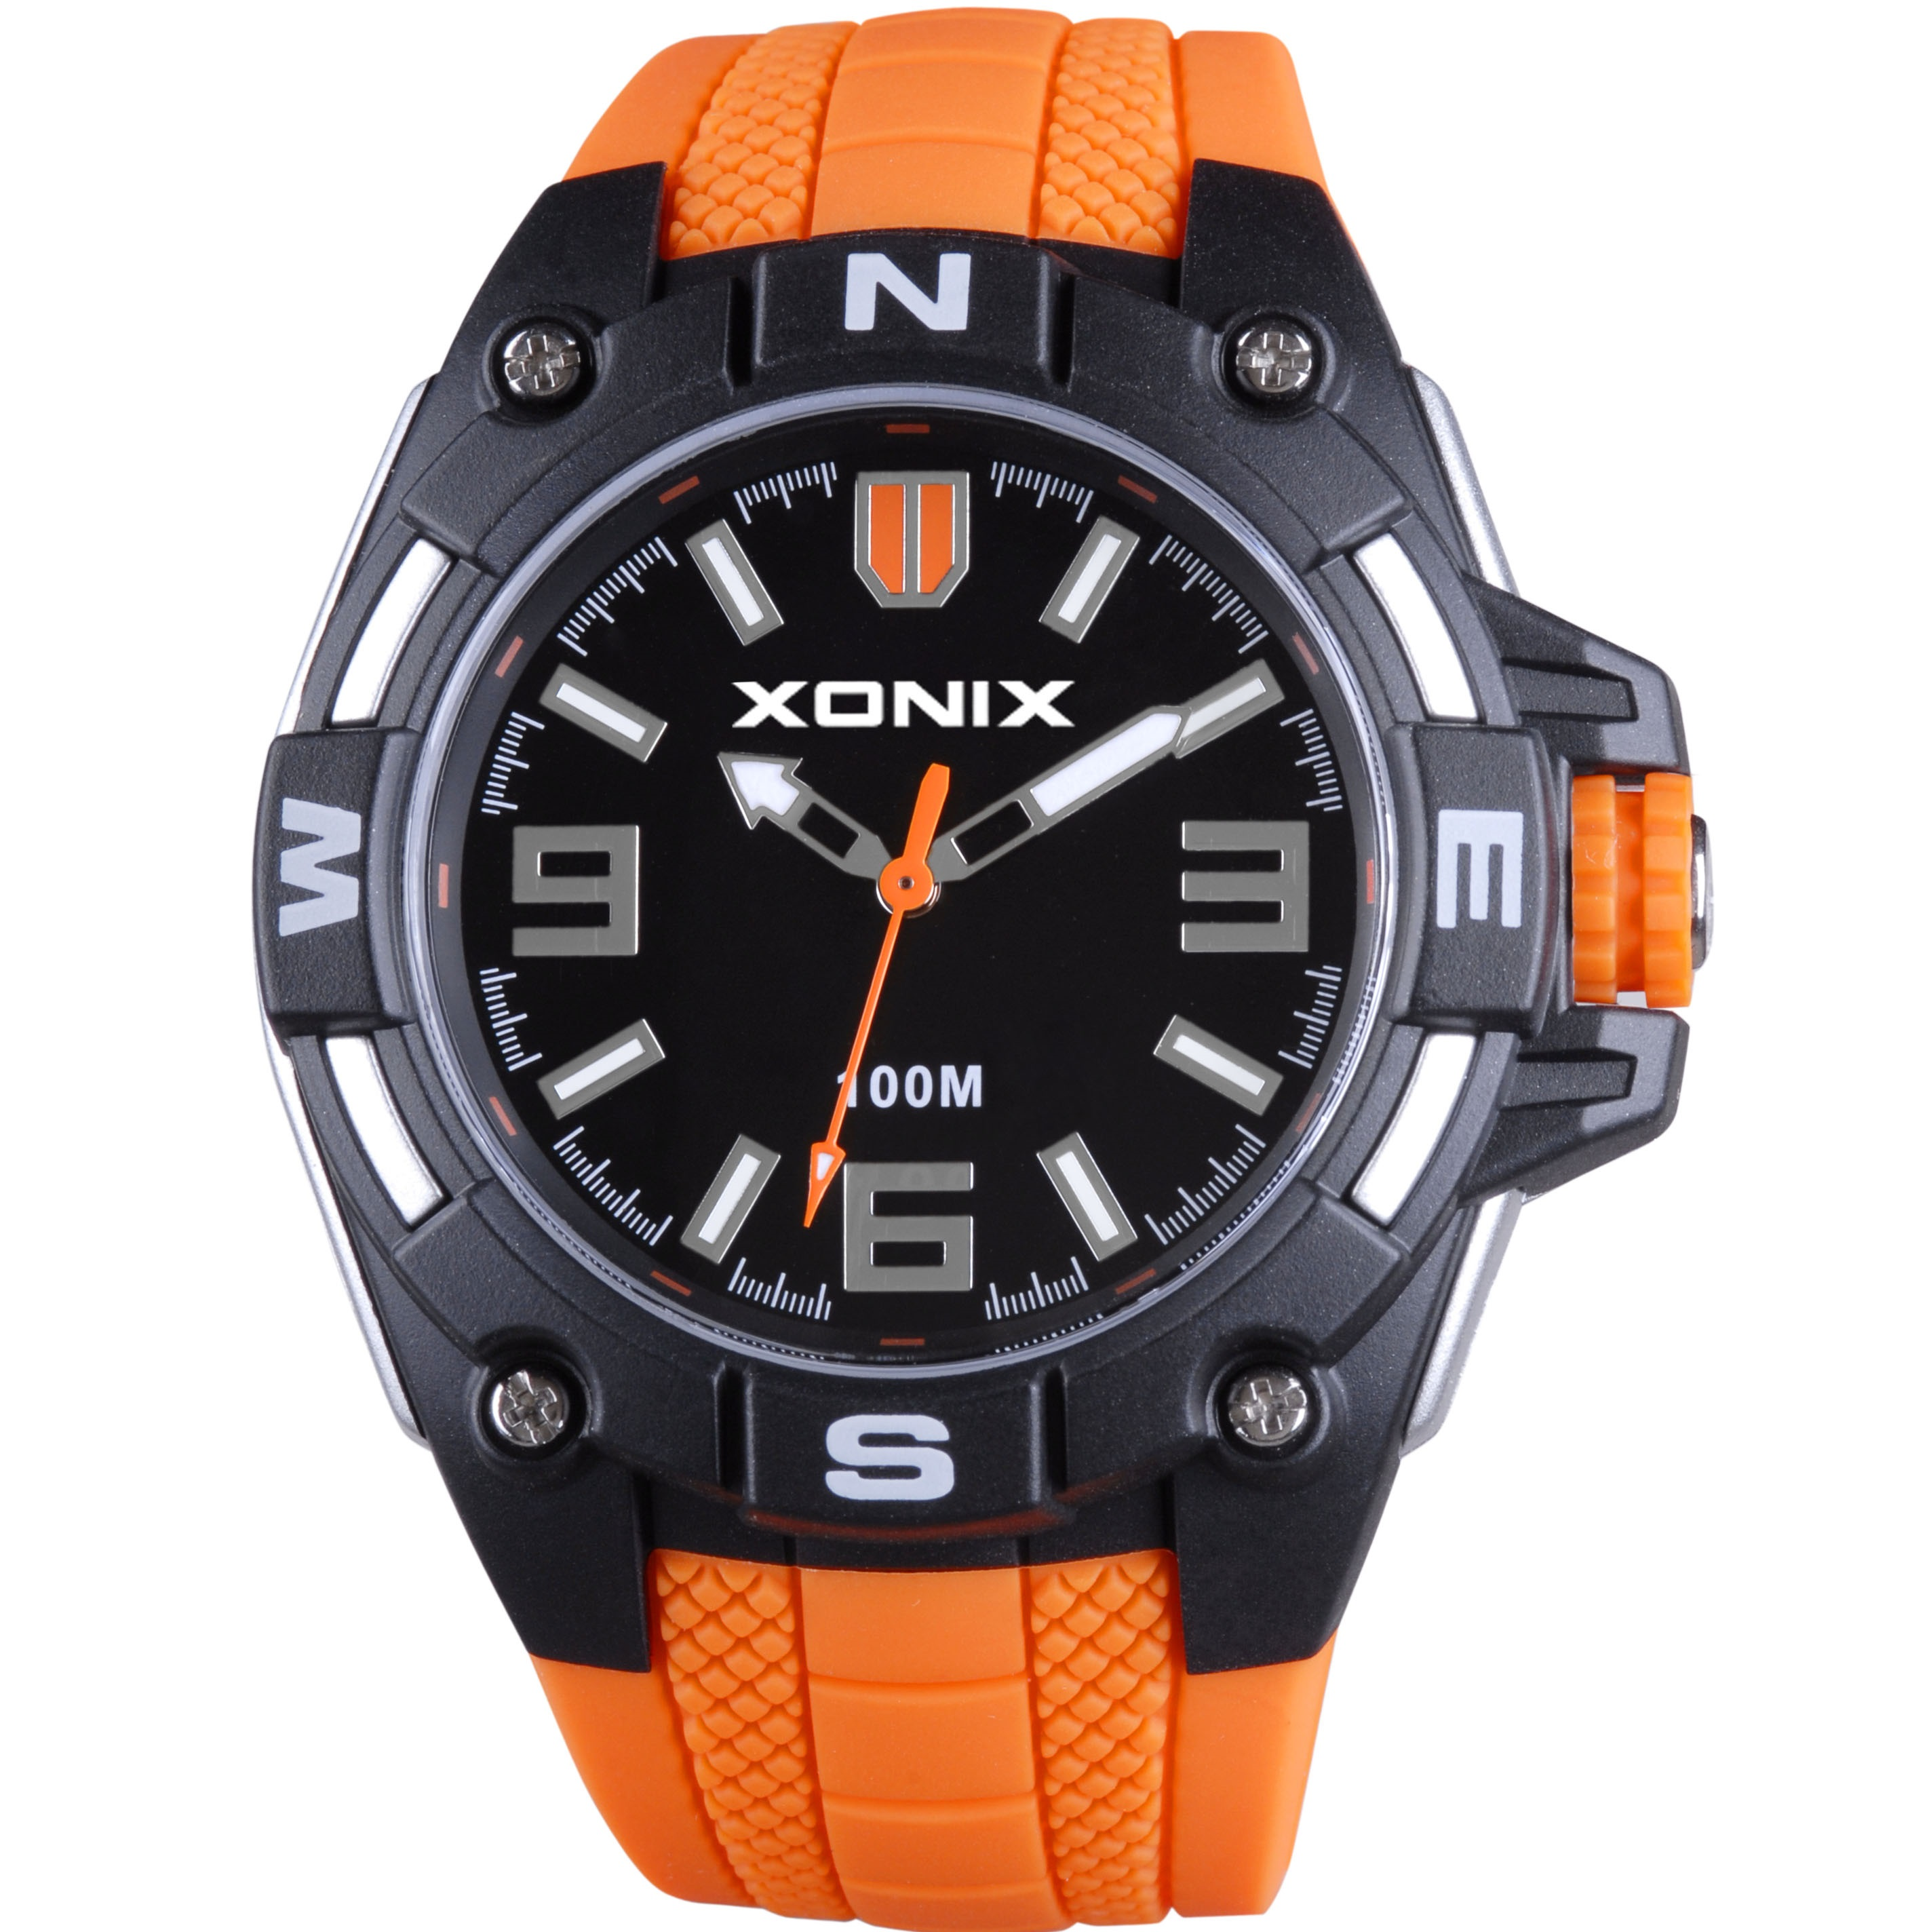 Xonix Orange Rubber Strap ZI-002